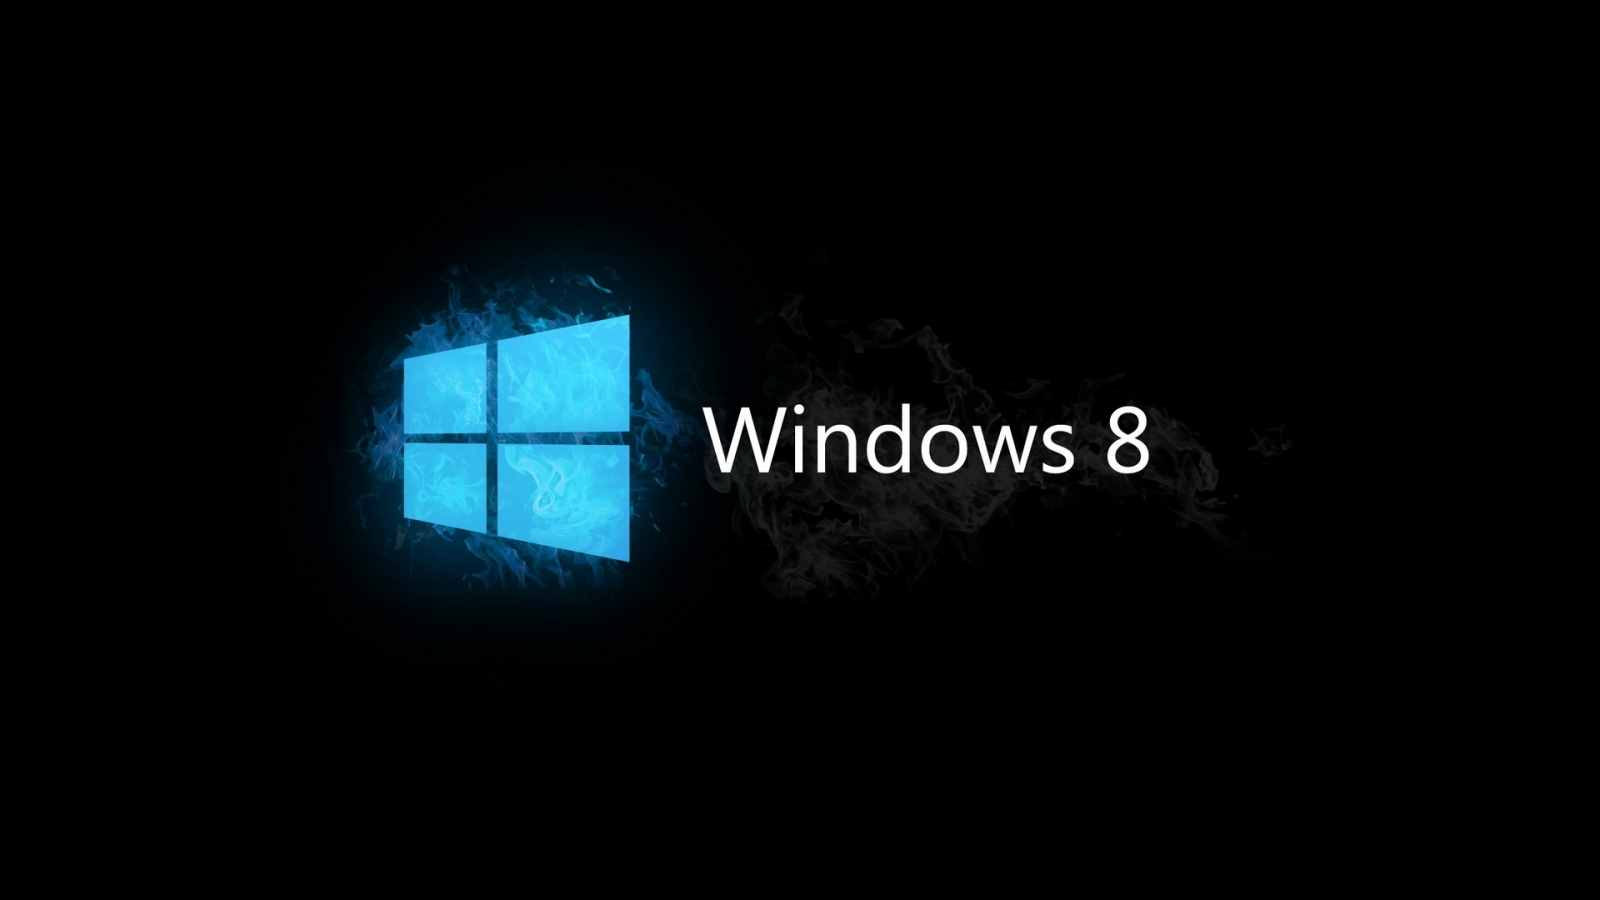 Windows 8 1600x900 Wallpapers 1600x900 Wallpapers Pictures 1600x900